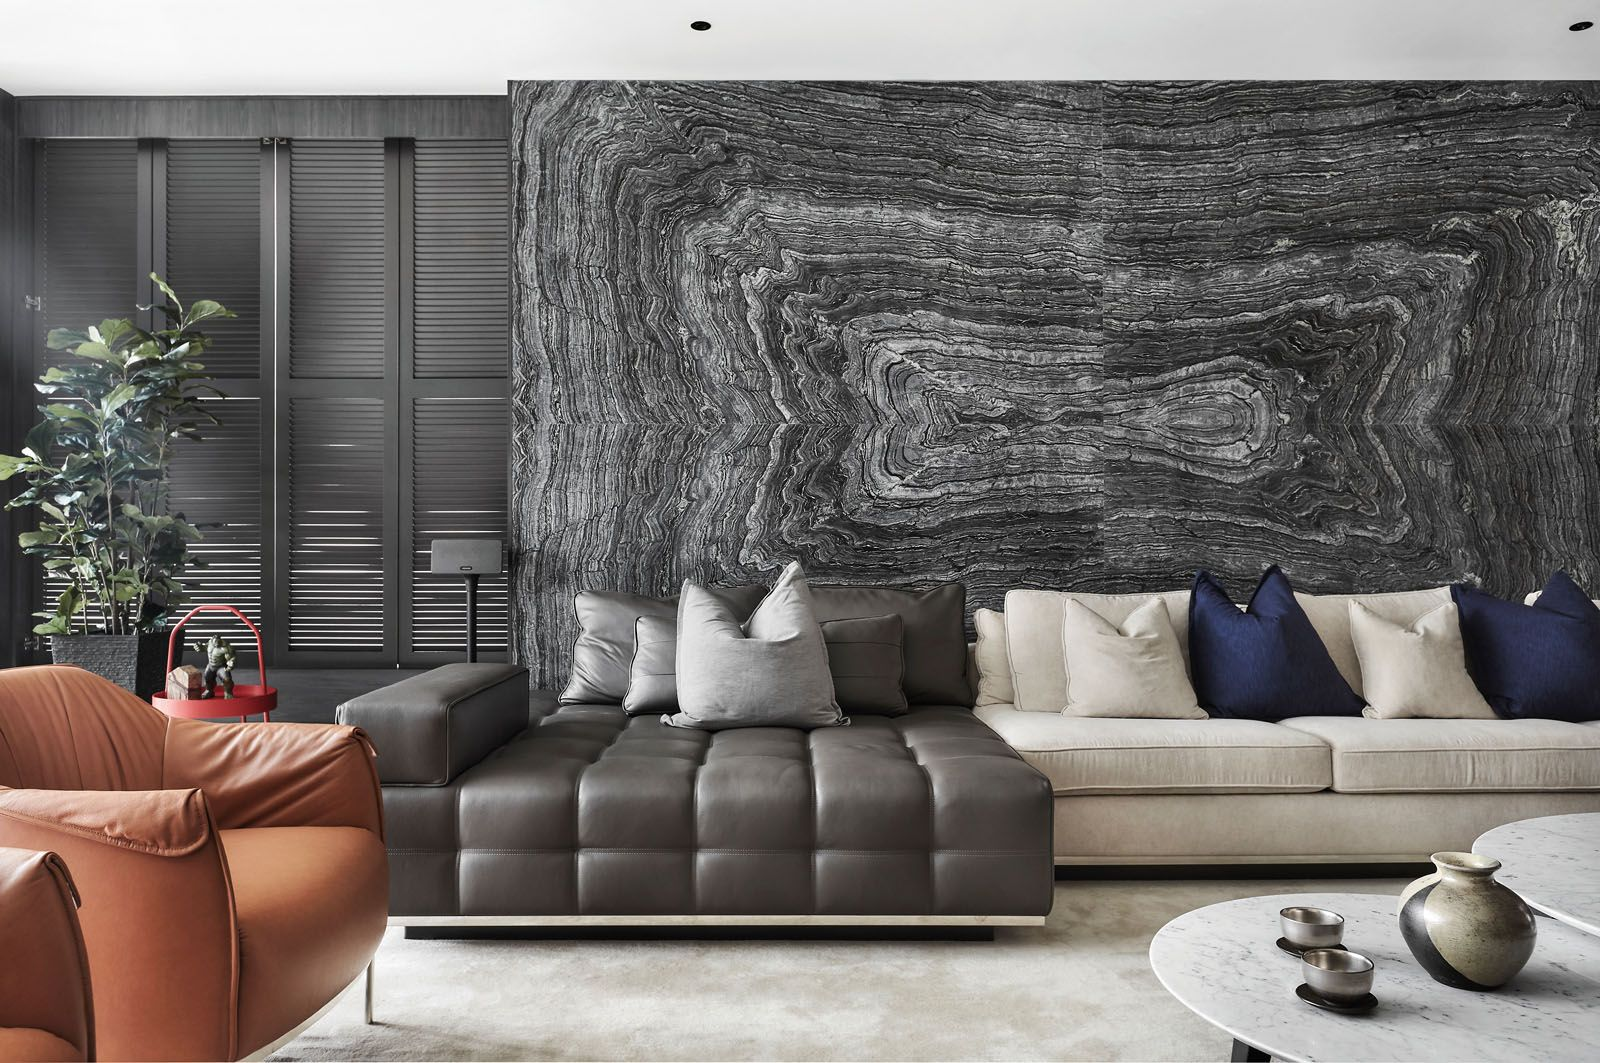 The heavy veins of the feature wall are the focal point of the living room